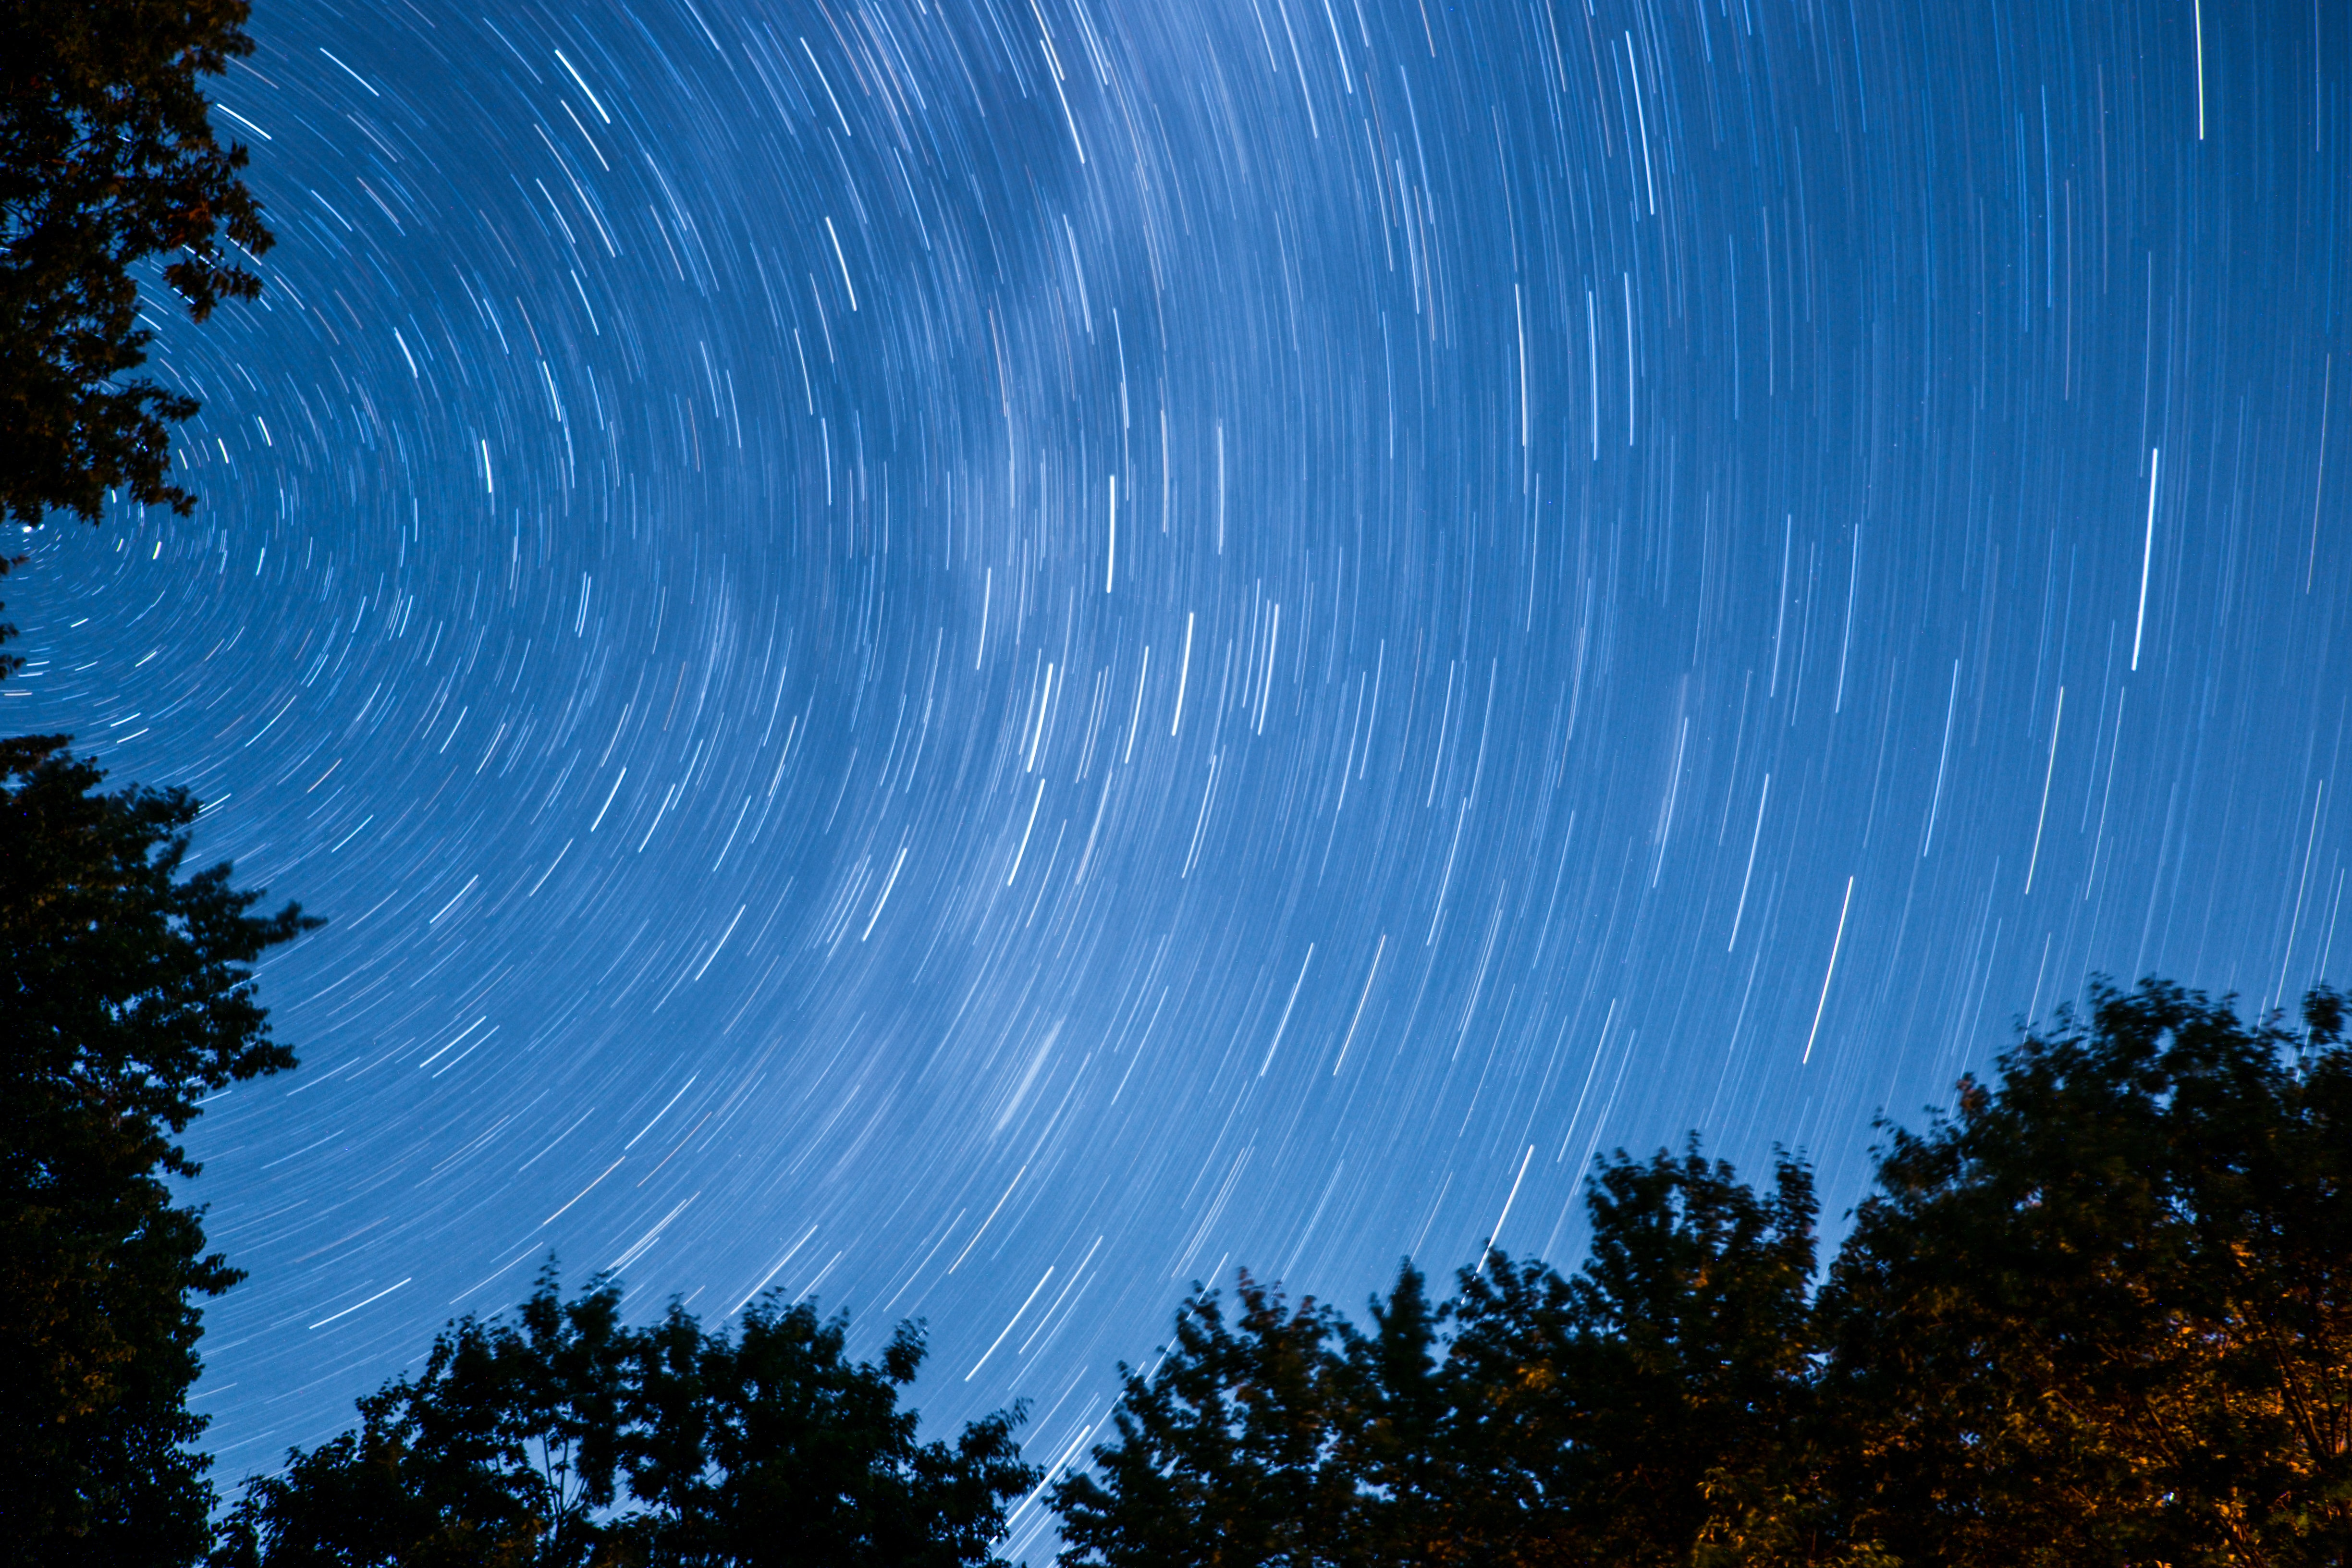 A blue night sky with star light trails above Fryeburg in the state of Maine